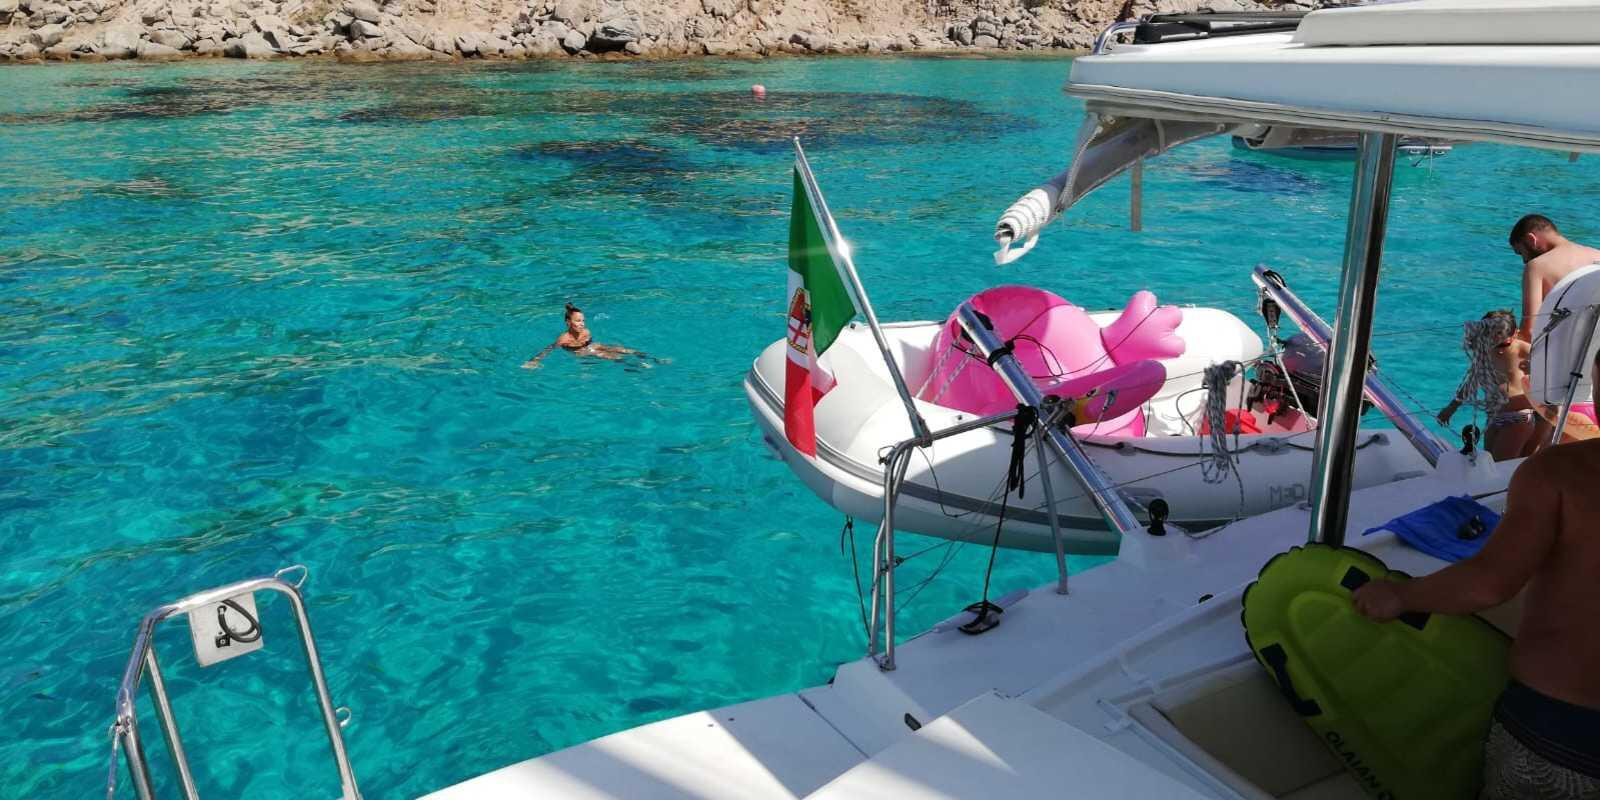 April 25 on a luxurious catamaran to the Maddalena Archipelago